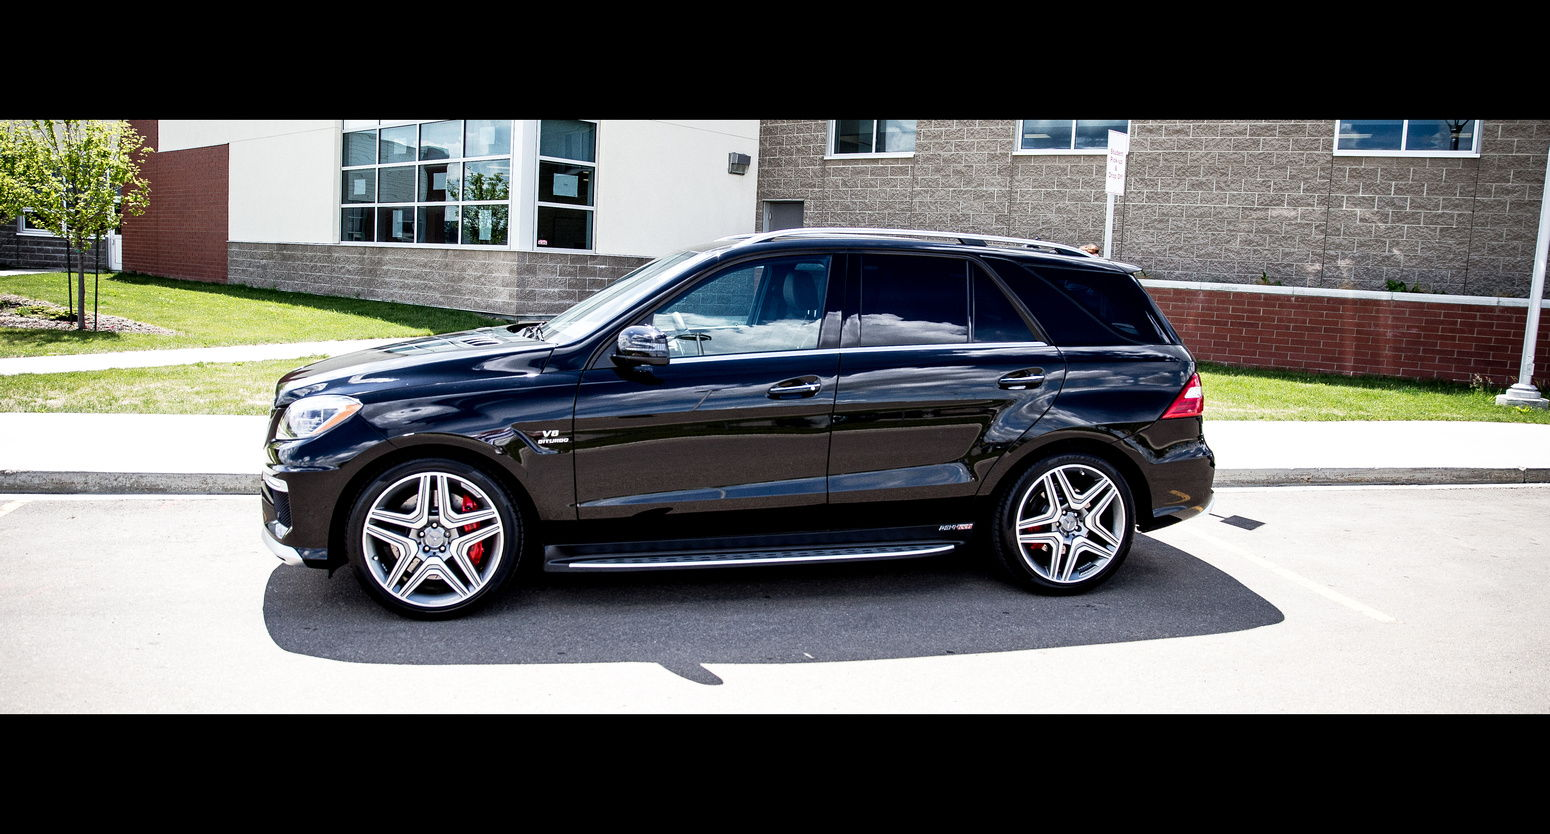 ML 63 Reliability vs Range Rover and Cayenne. - MBWorld.org Forums